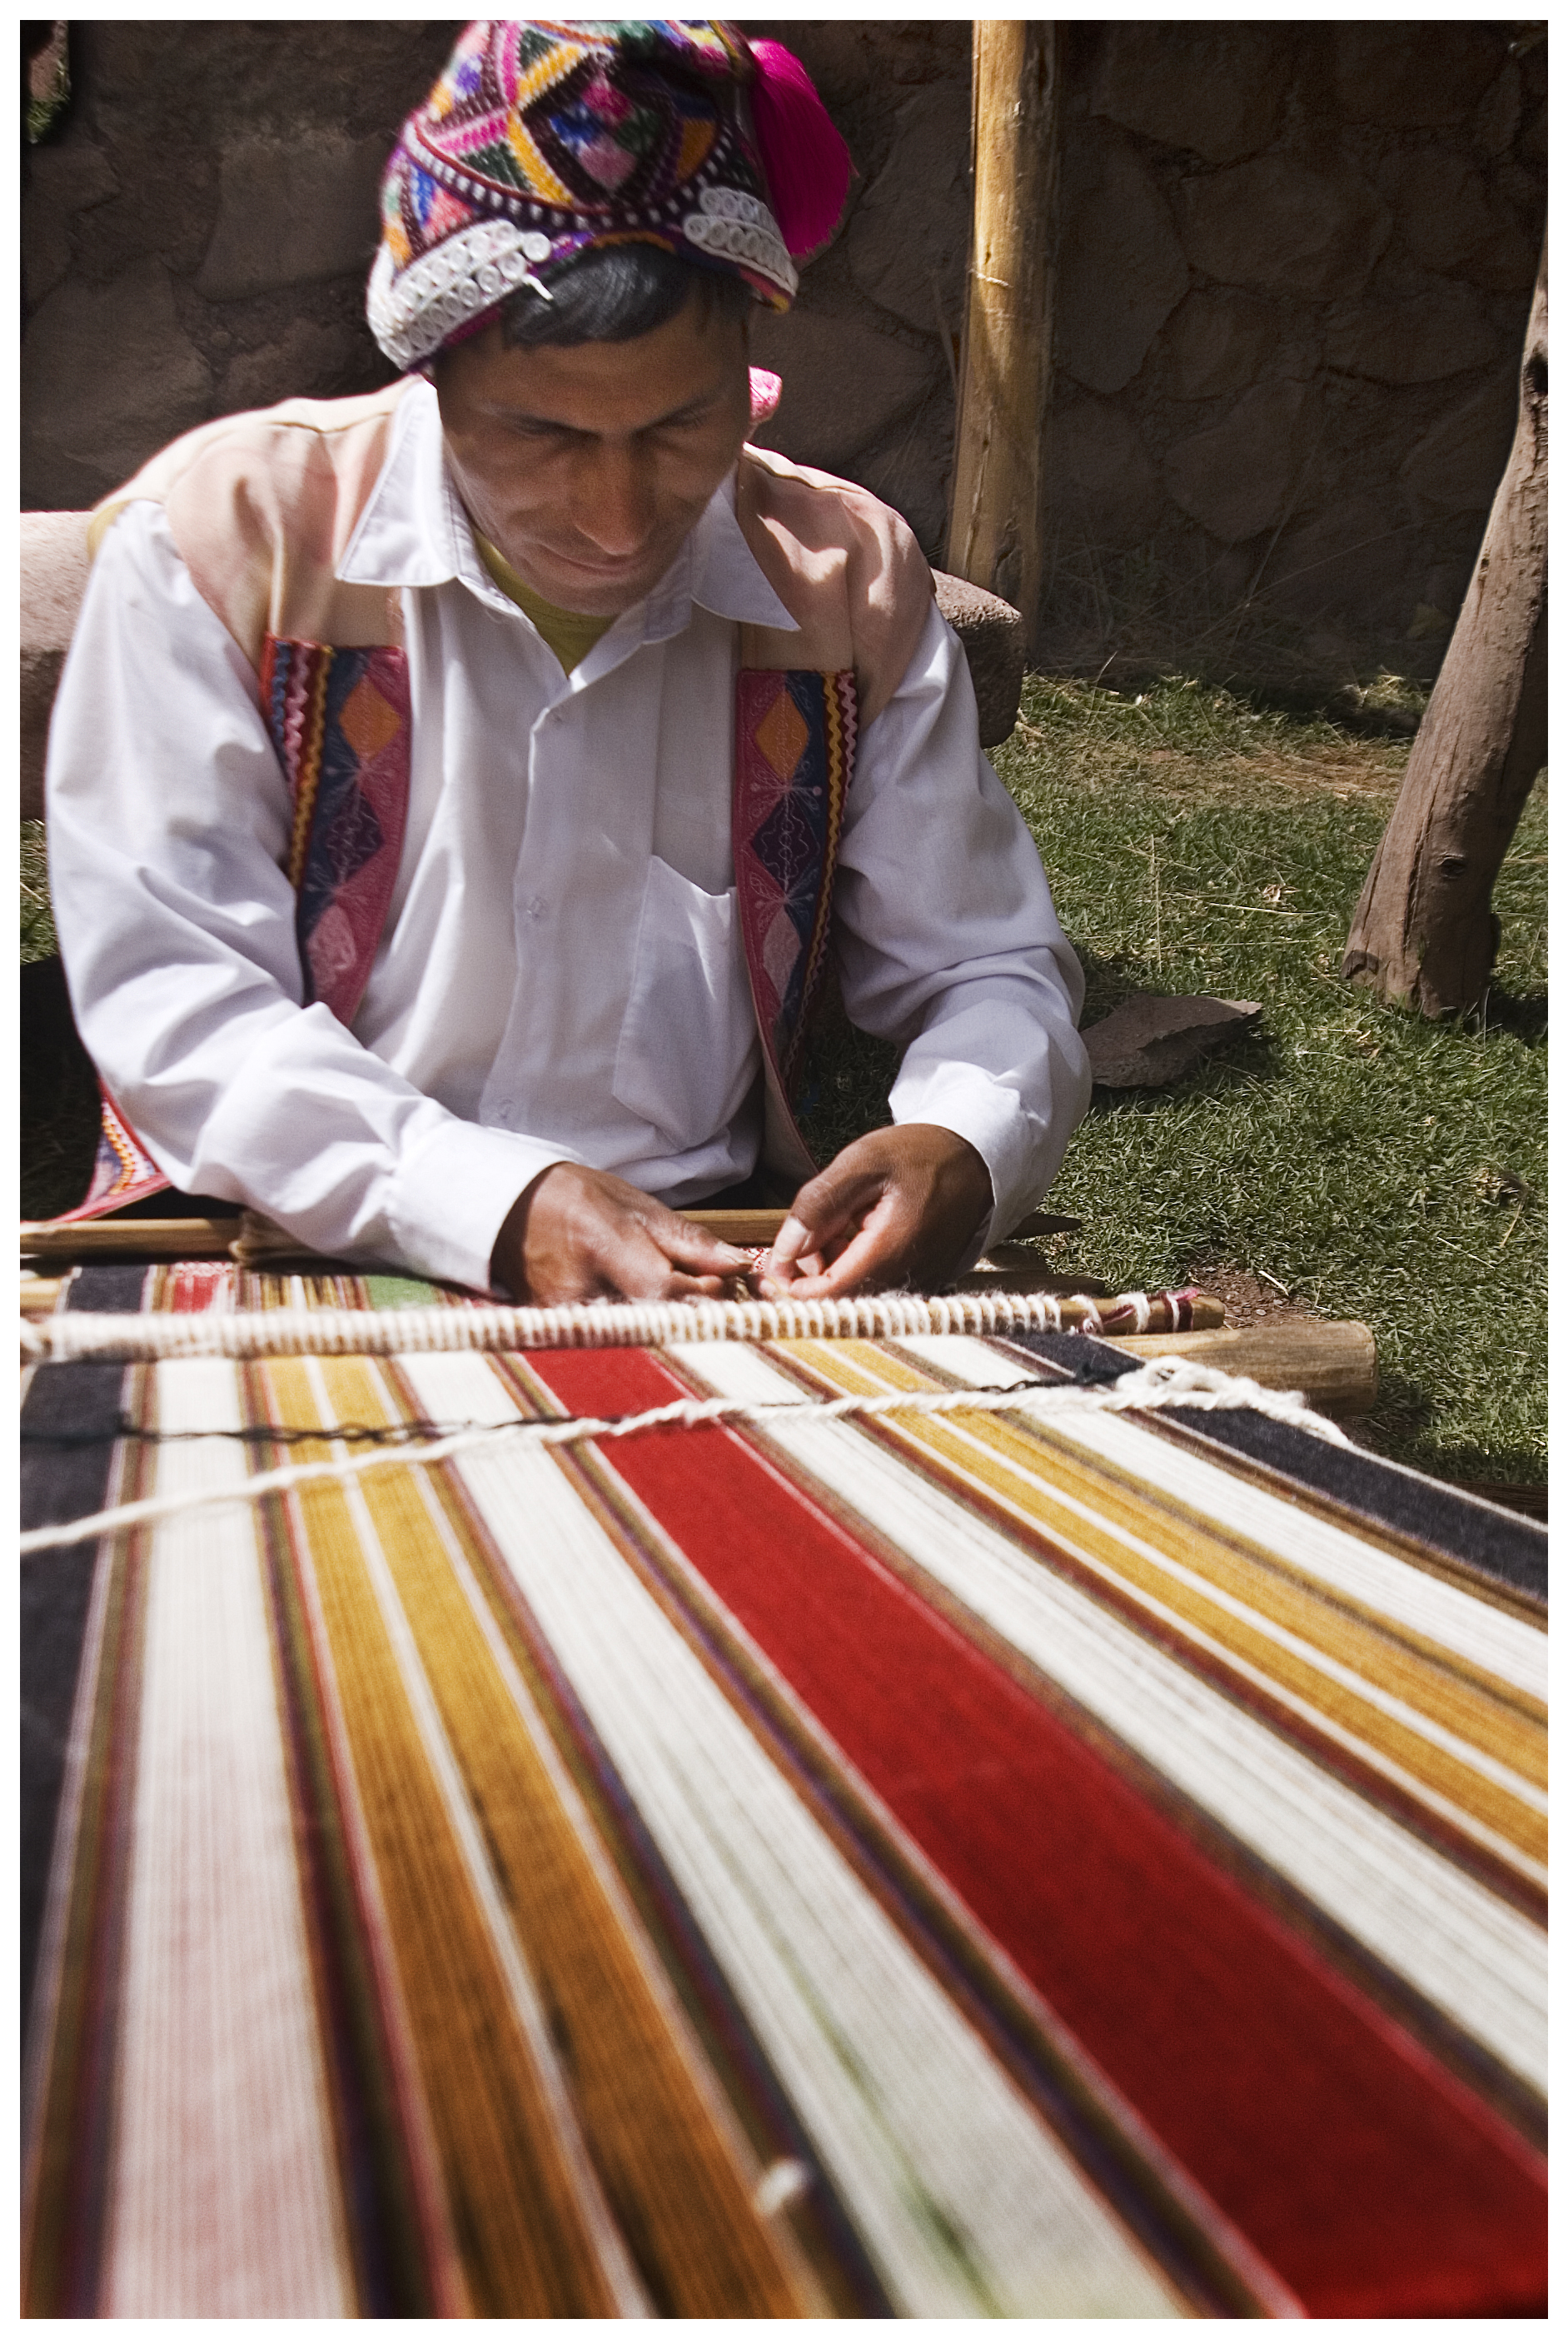 An artisan weaver works on a blanket at the Camelids, which will eventually be sold to a very lucky tourist.